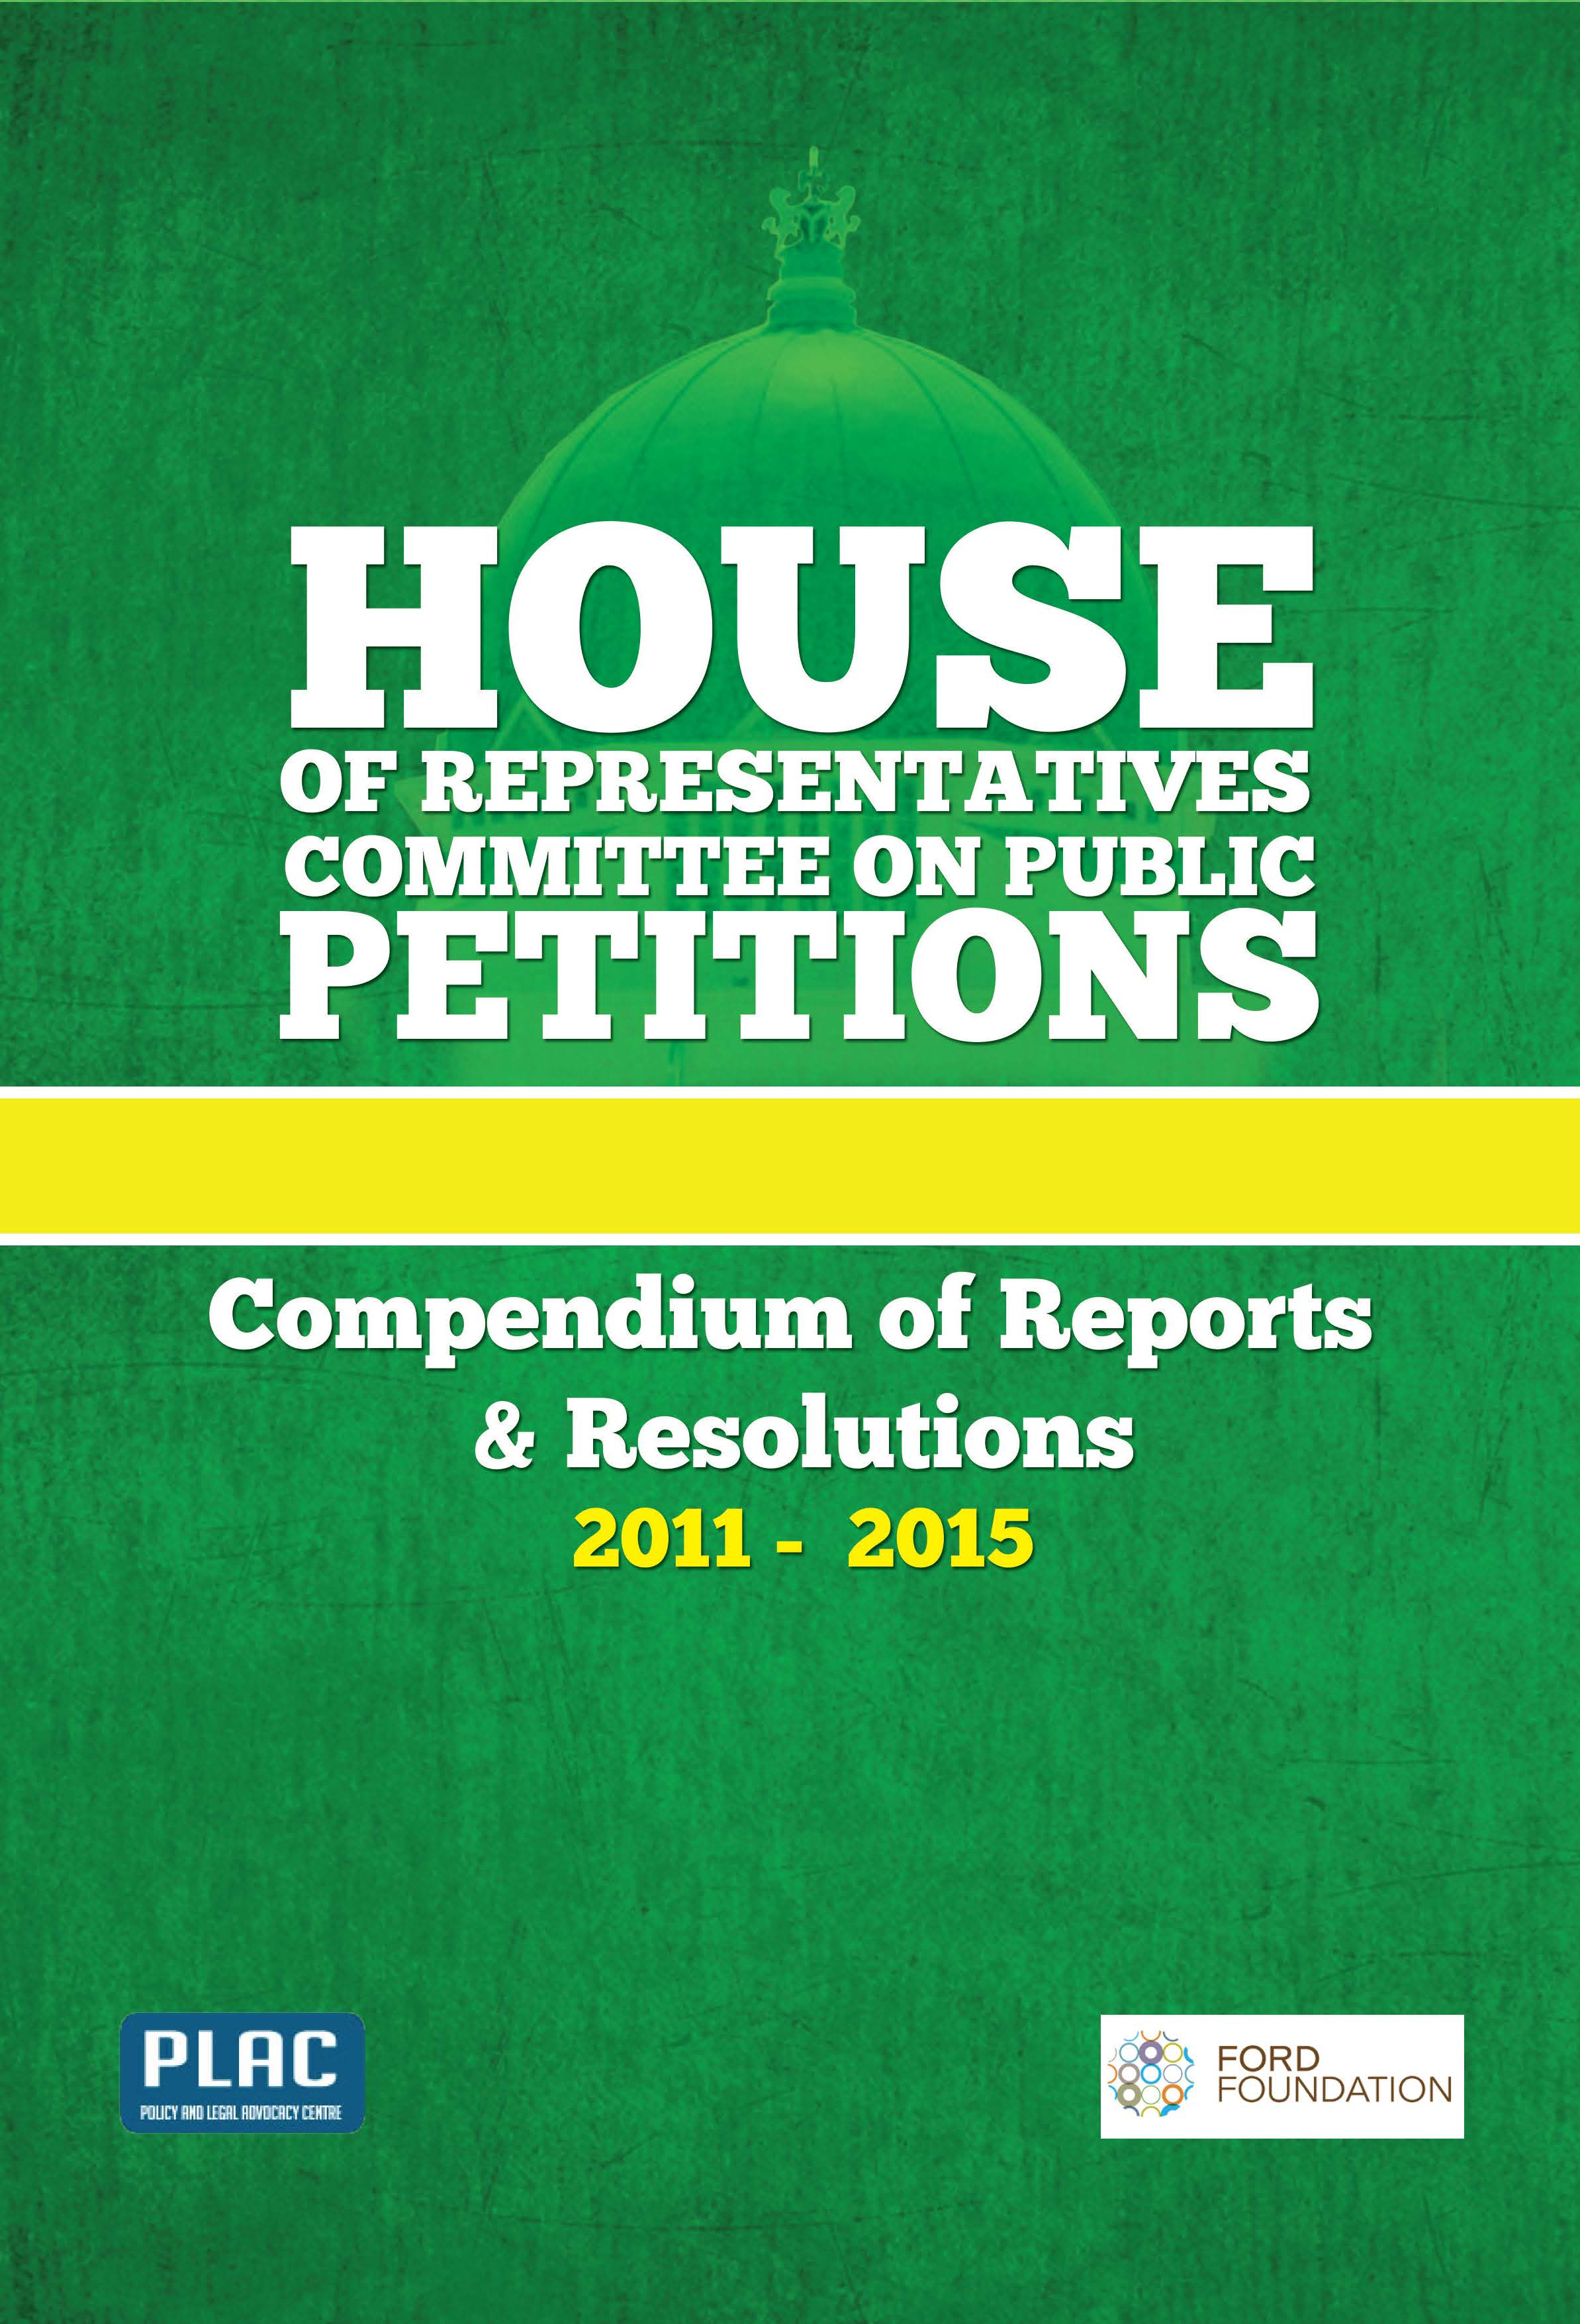 Compendium of Reports & Resolution of the House Committee on Public Petitions – 2011-2015